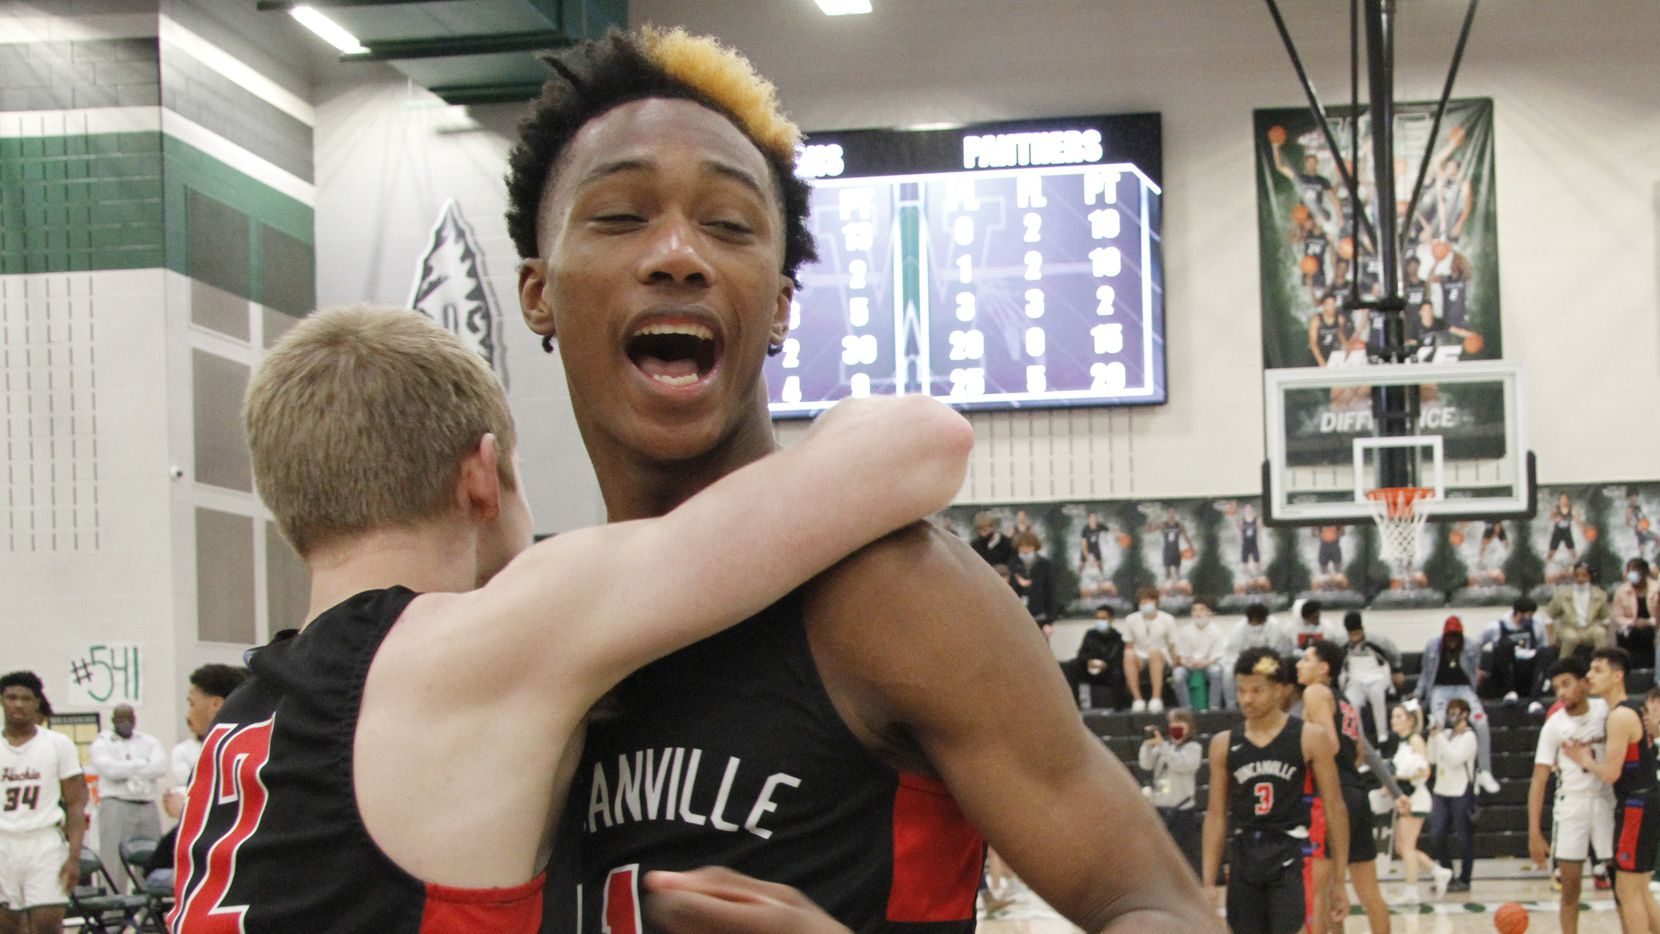 Duncanville's Ronald Holland (right) and teammate Jackson Prince celebrate after a 70-65 victory over Waxahachie in last season's Class 6A Region II final on March 5, 2021. (Steve Hamm/Special Contributor)